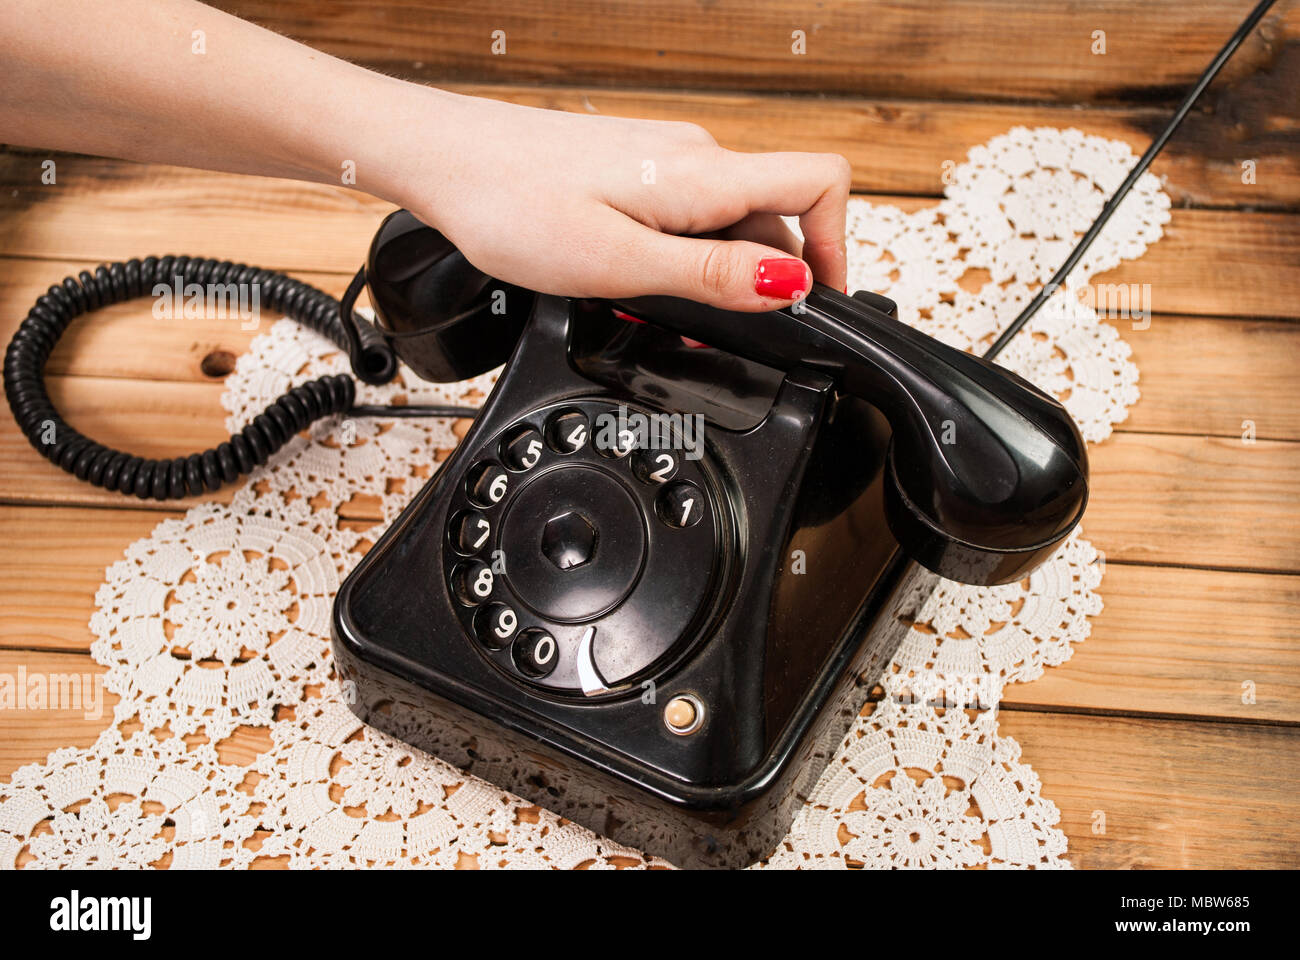 Girl hand holding old telephone headset on lace tablecloths and wooden background - Stock Image